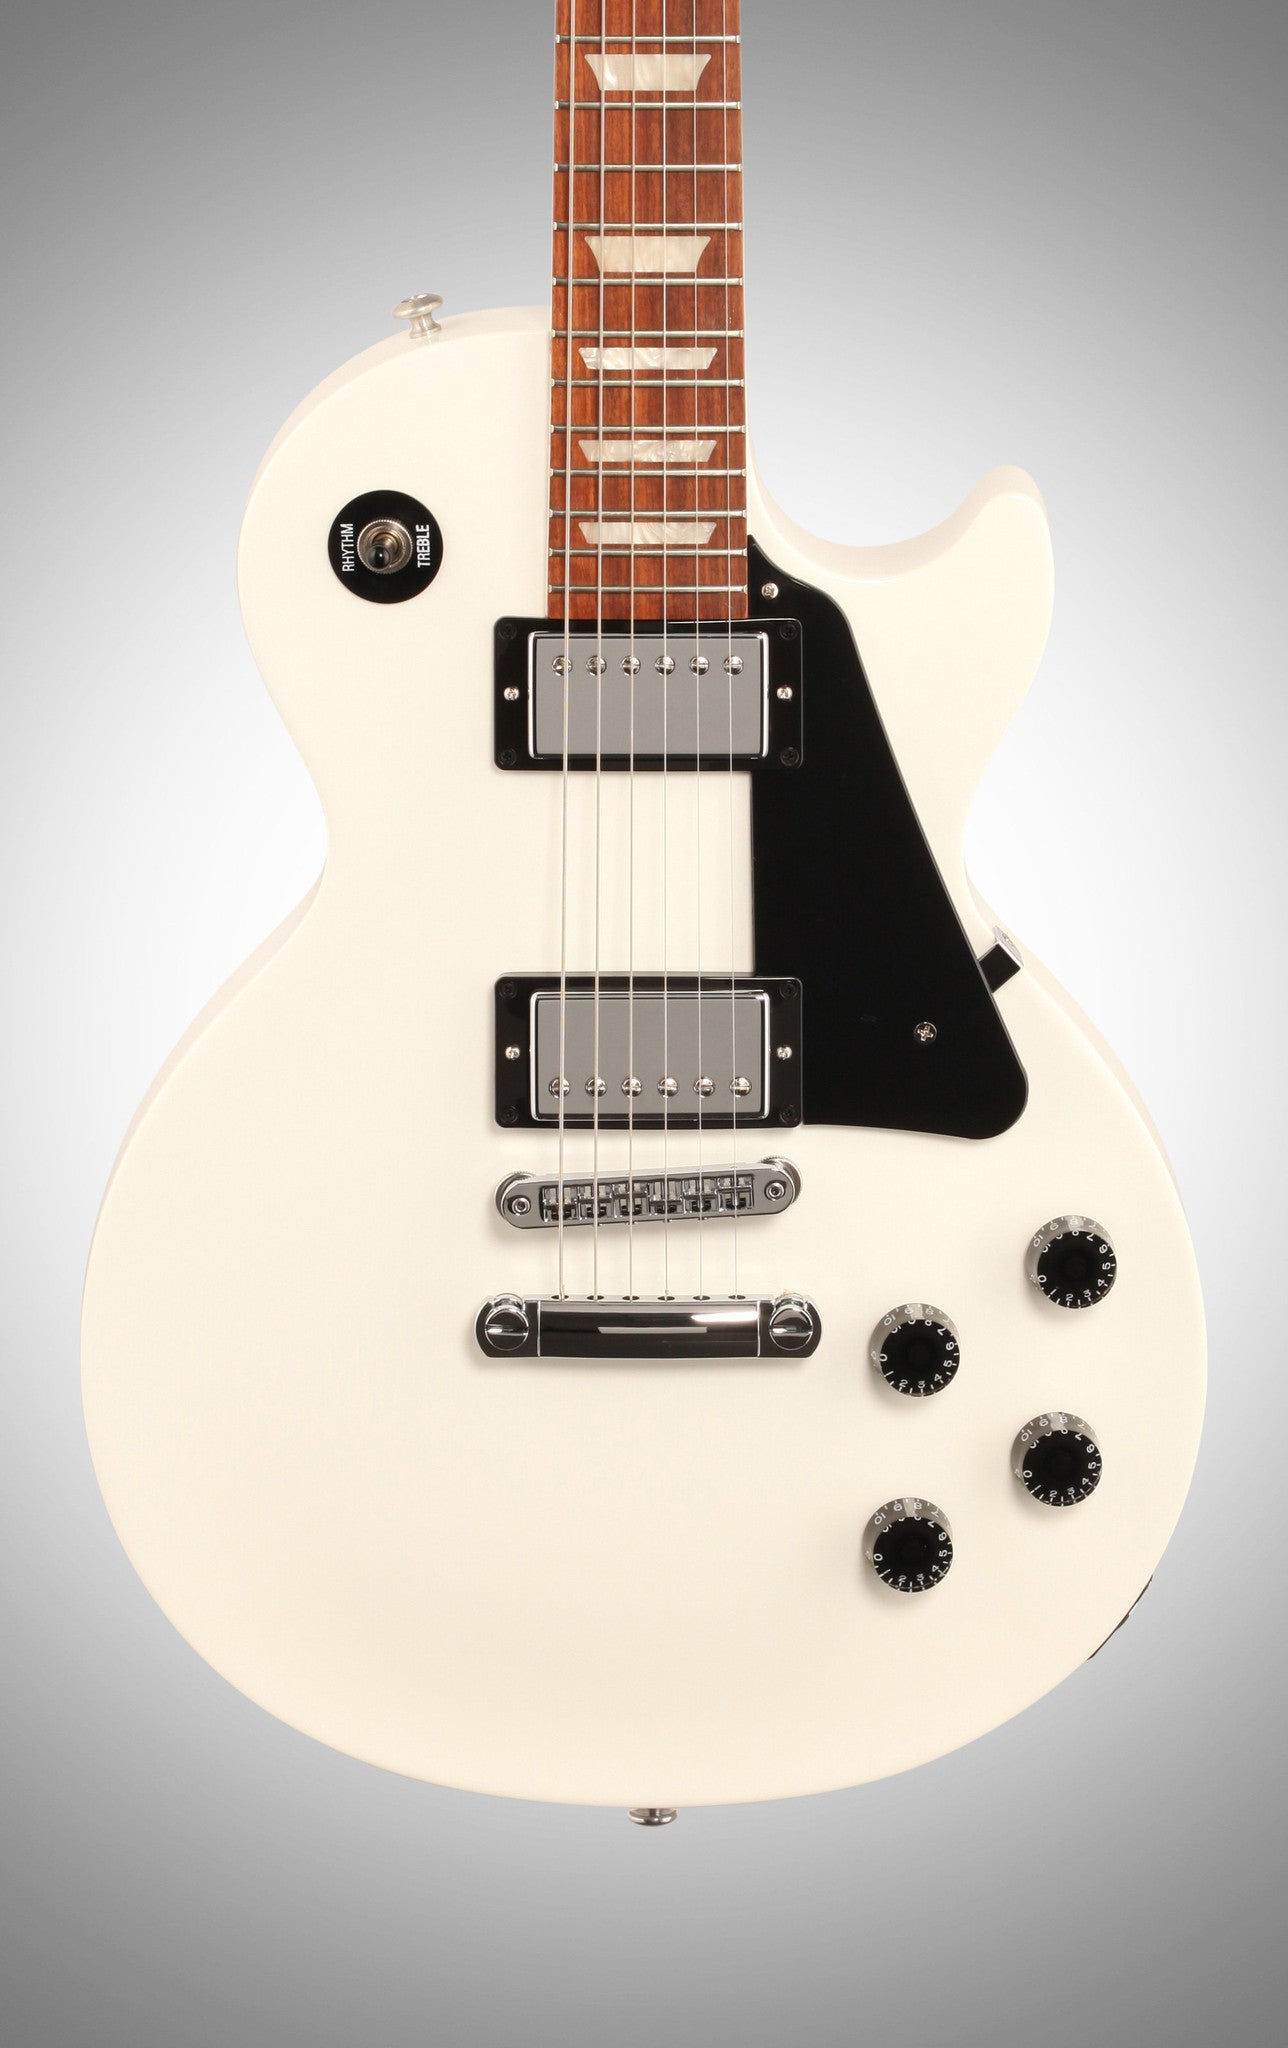 Gibson 2016 Les Paul Studio T Electric Guitar (with Case), Alpine White Gibson - HIENDGUITAR.COM